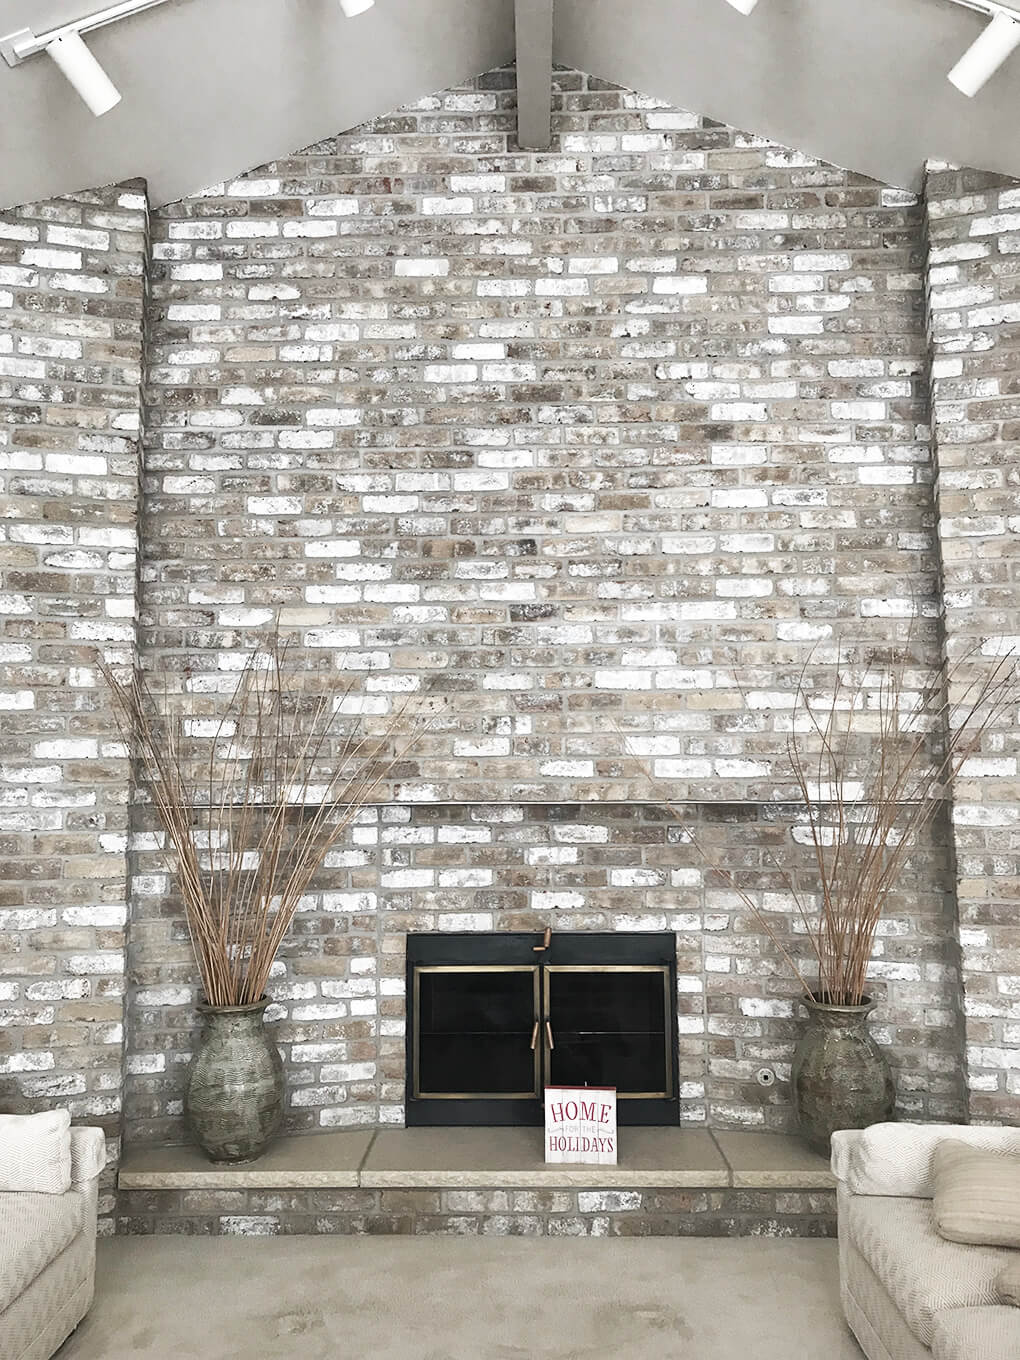 Home www.sarahkayhoffman.com fireplace home for the holidays new house #lifestyleblogger #homedecor